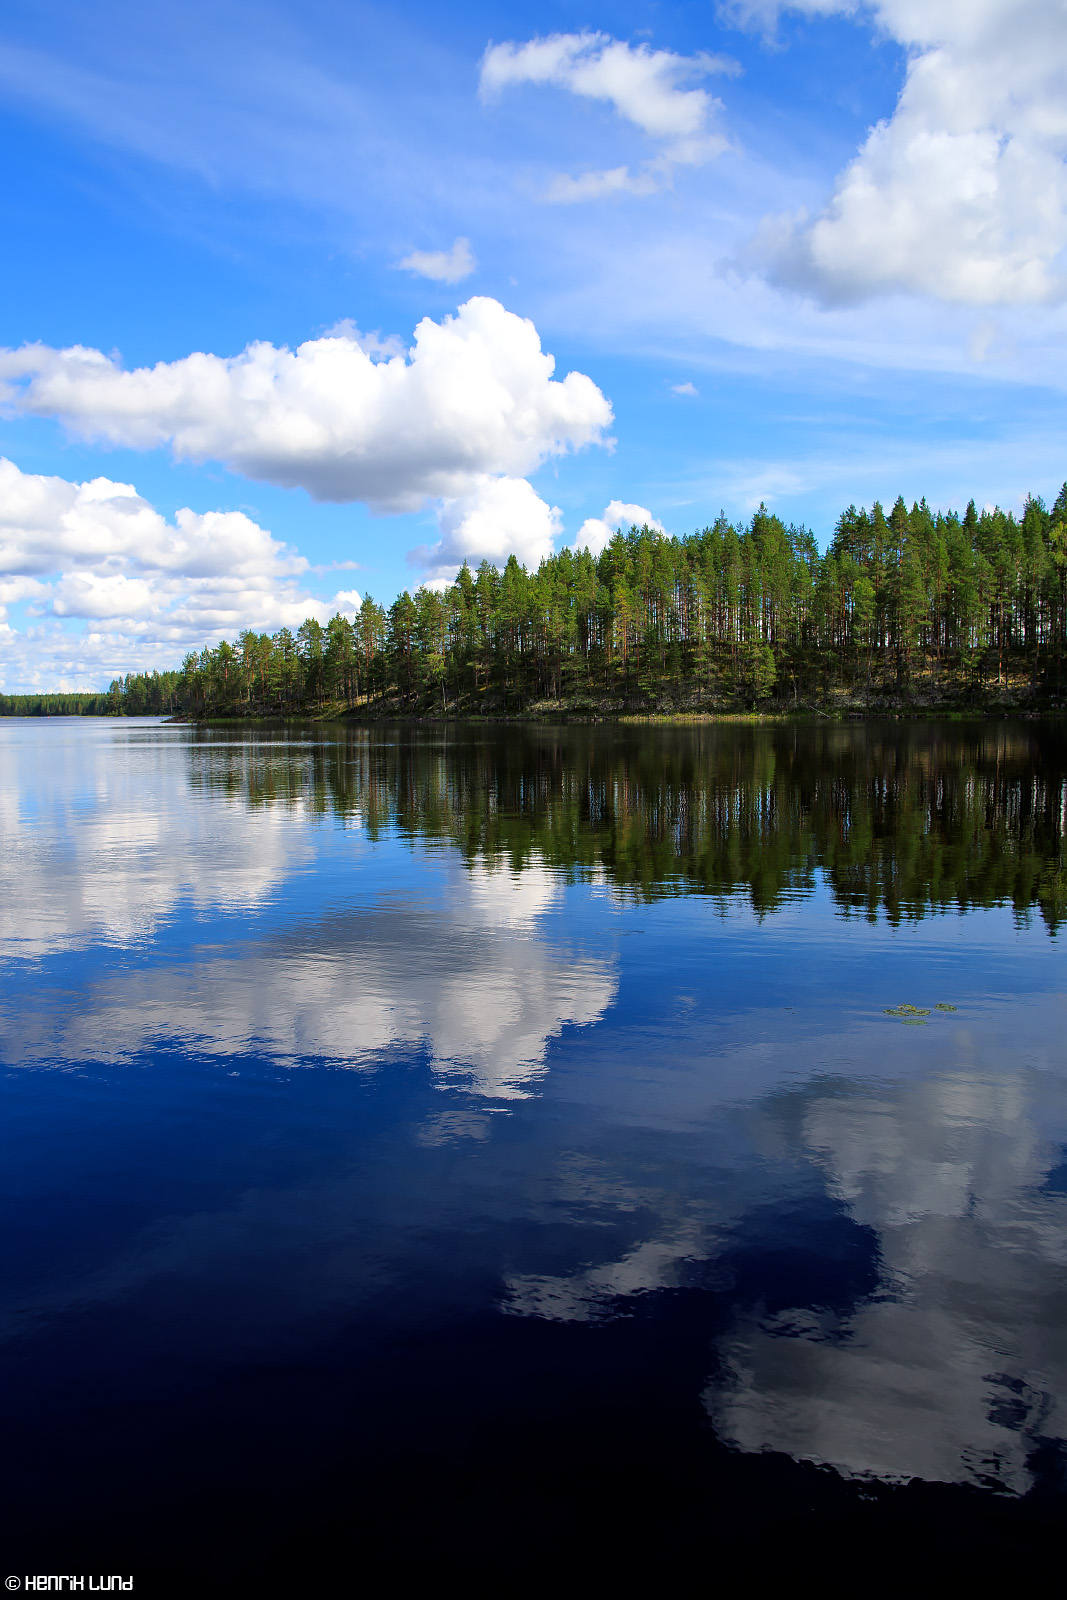 Seaview over Valkiajärvi at Petkeljärvi National park in Ilomantsi, Finland. August, 2016.